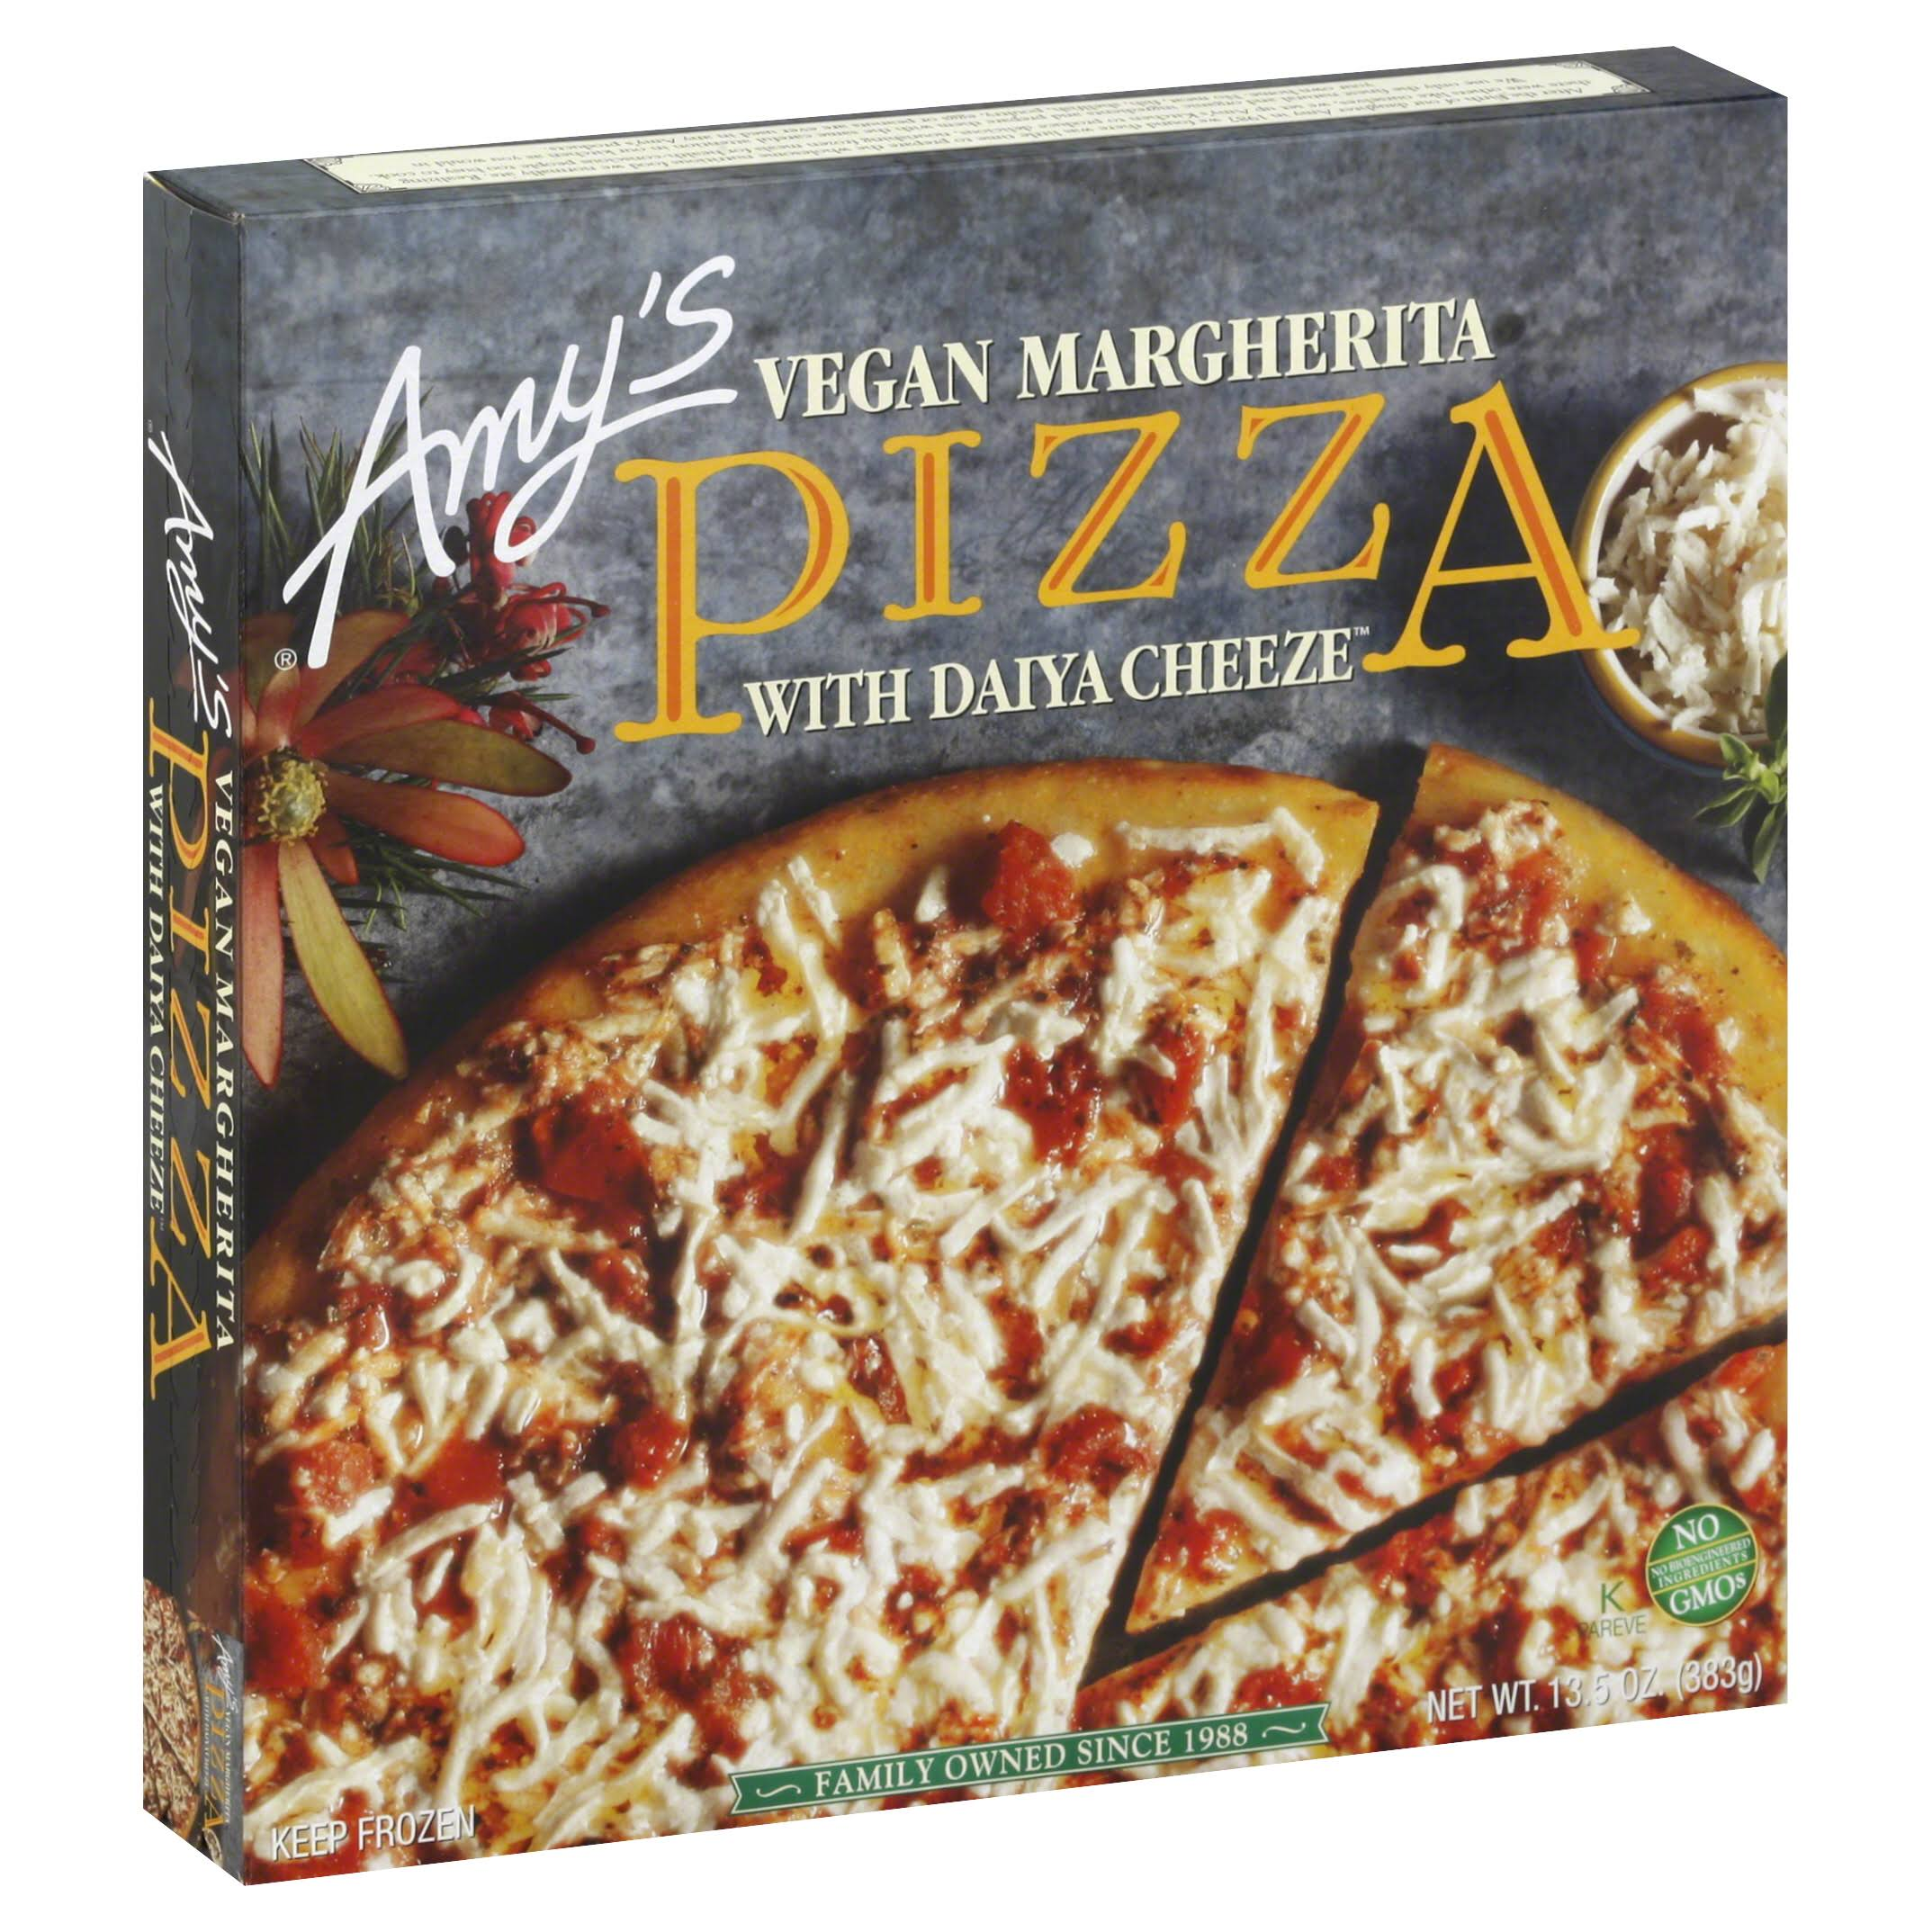 Amys Pizza, Vegan Margherita, with Daiya Cheeze - 13.5 oz